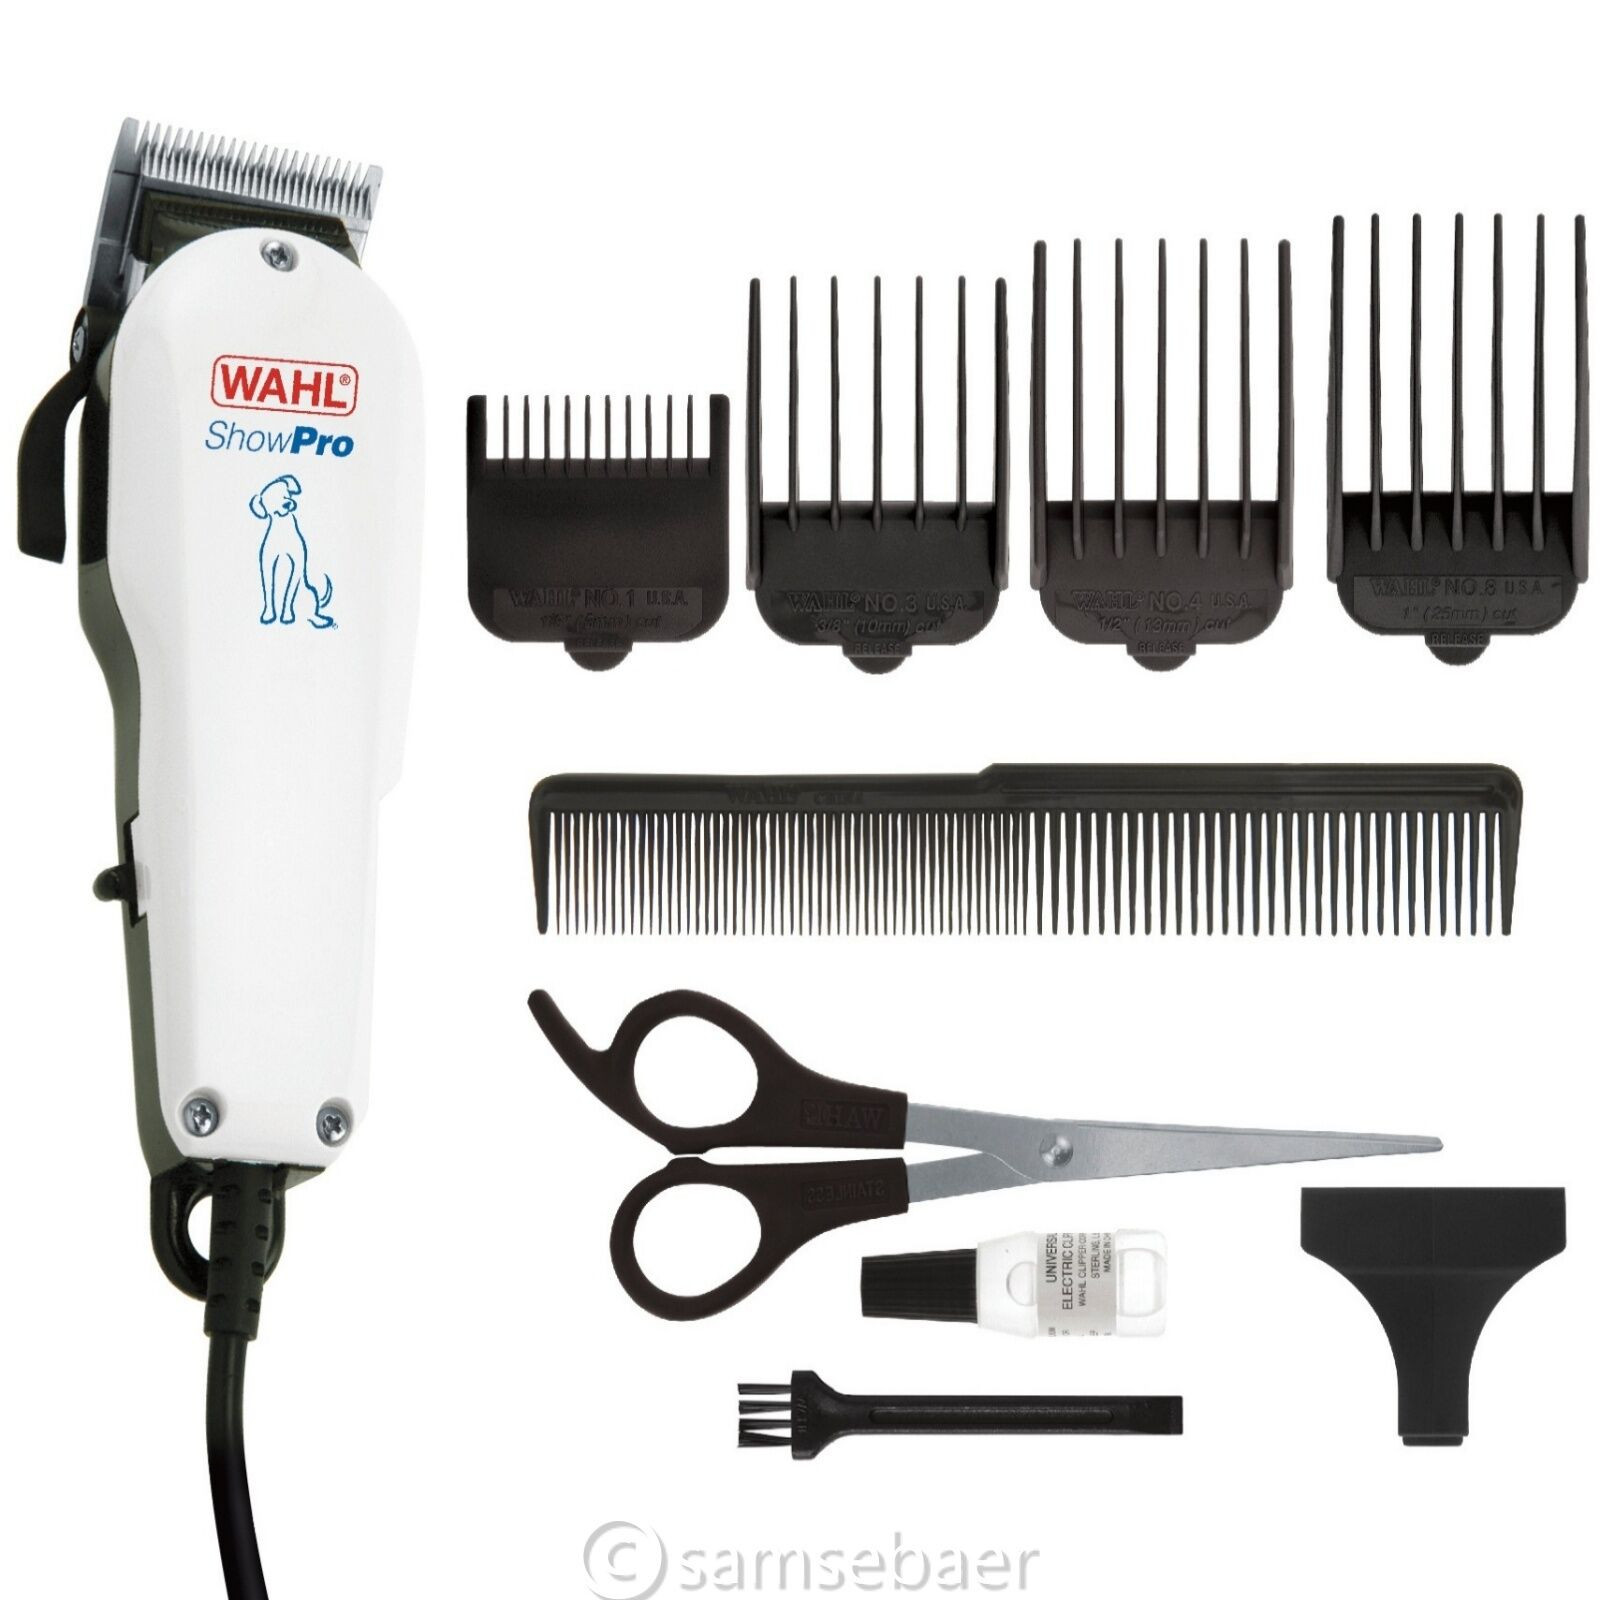 Scelta Moser CANI TOSATRICE show Pro, Animal Clipper, cani TRIMMER 40077